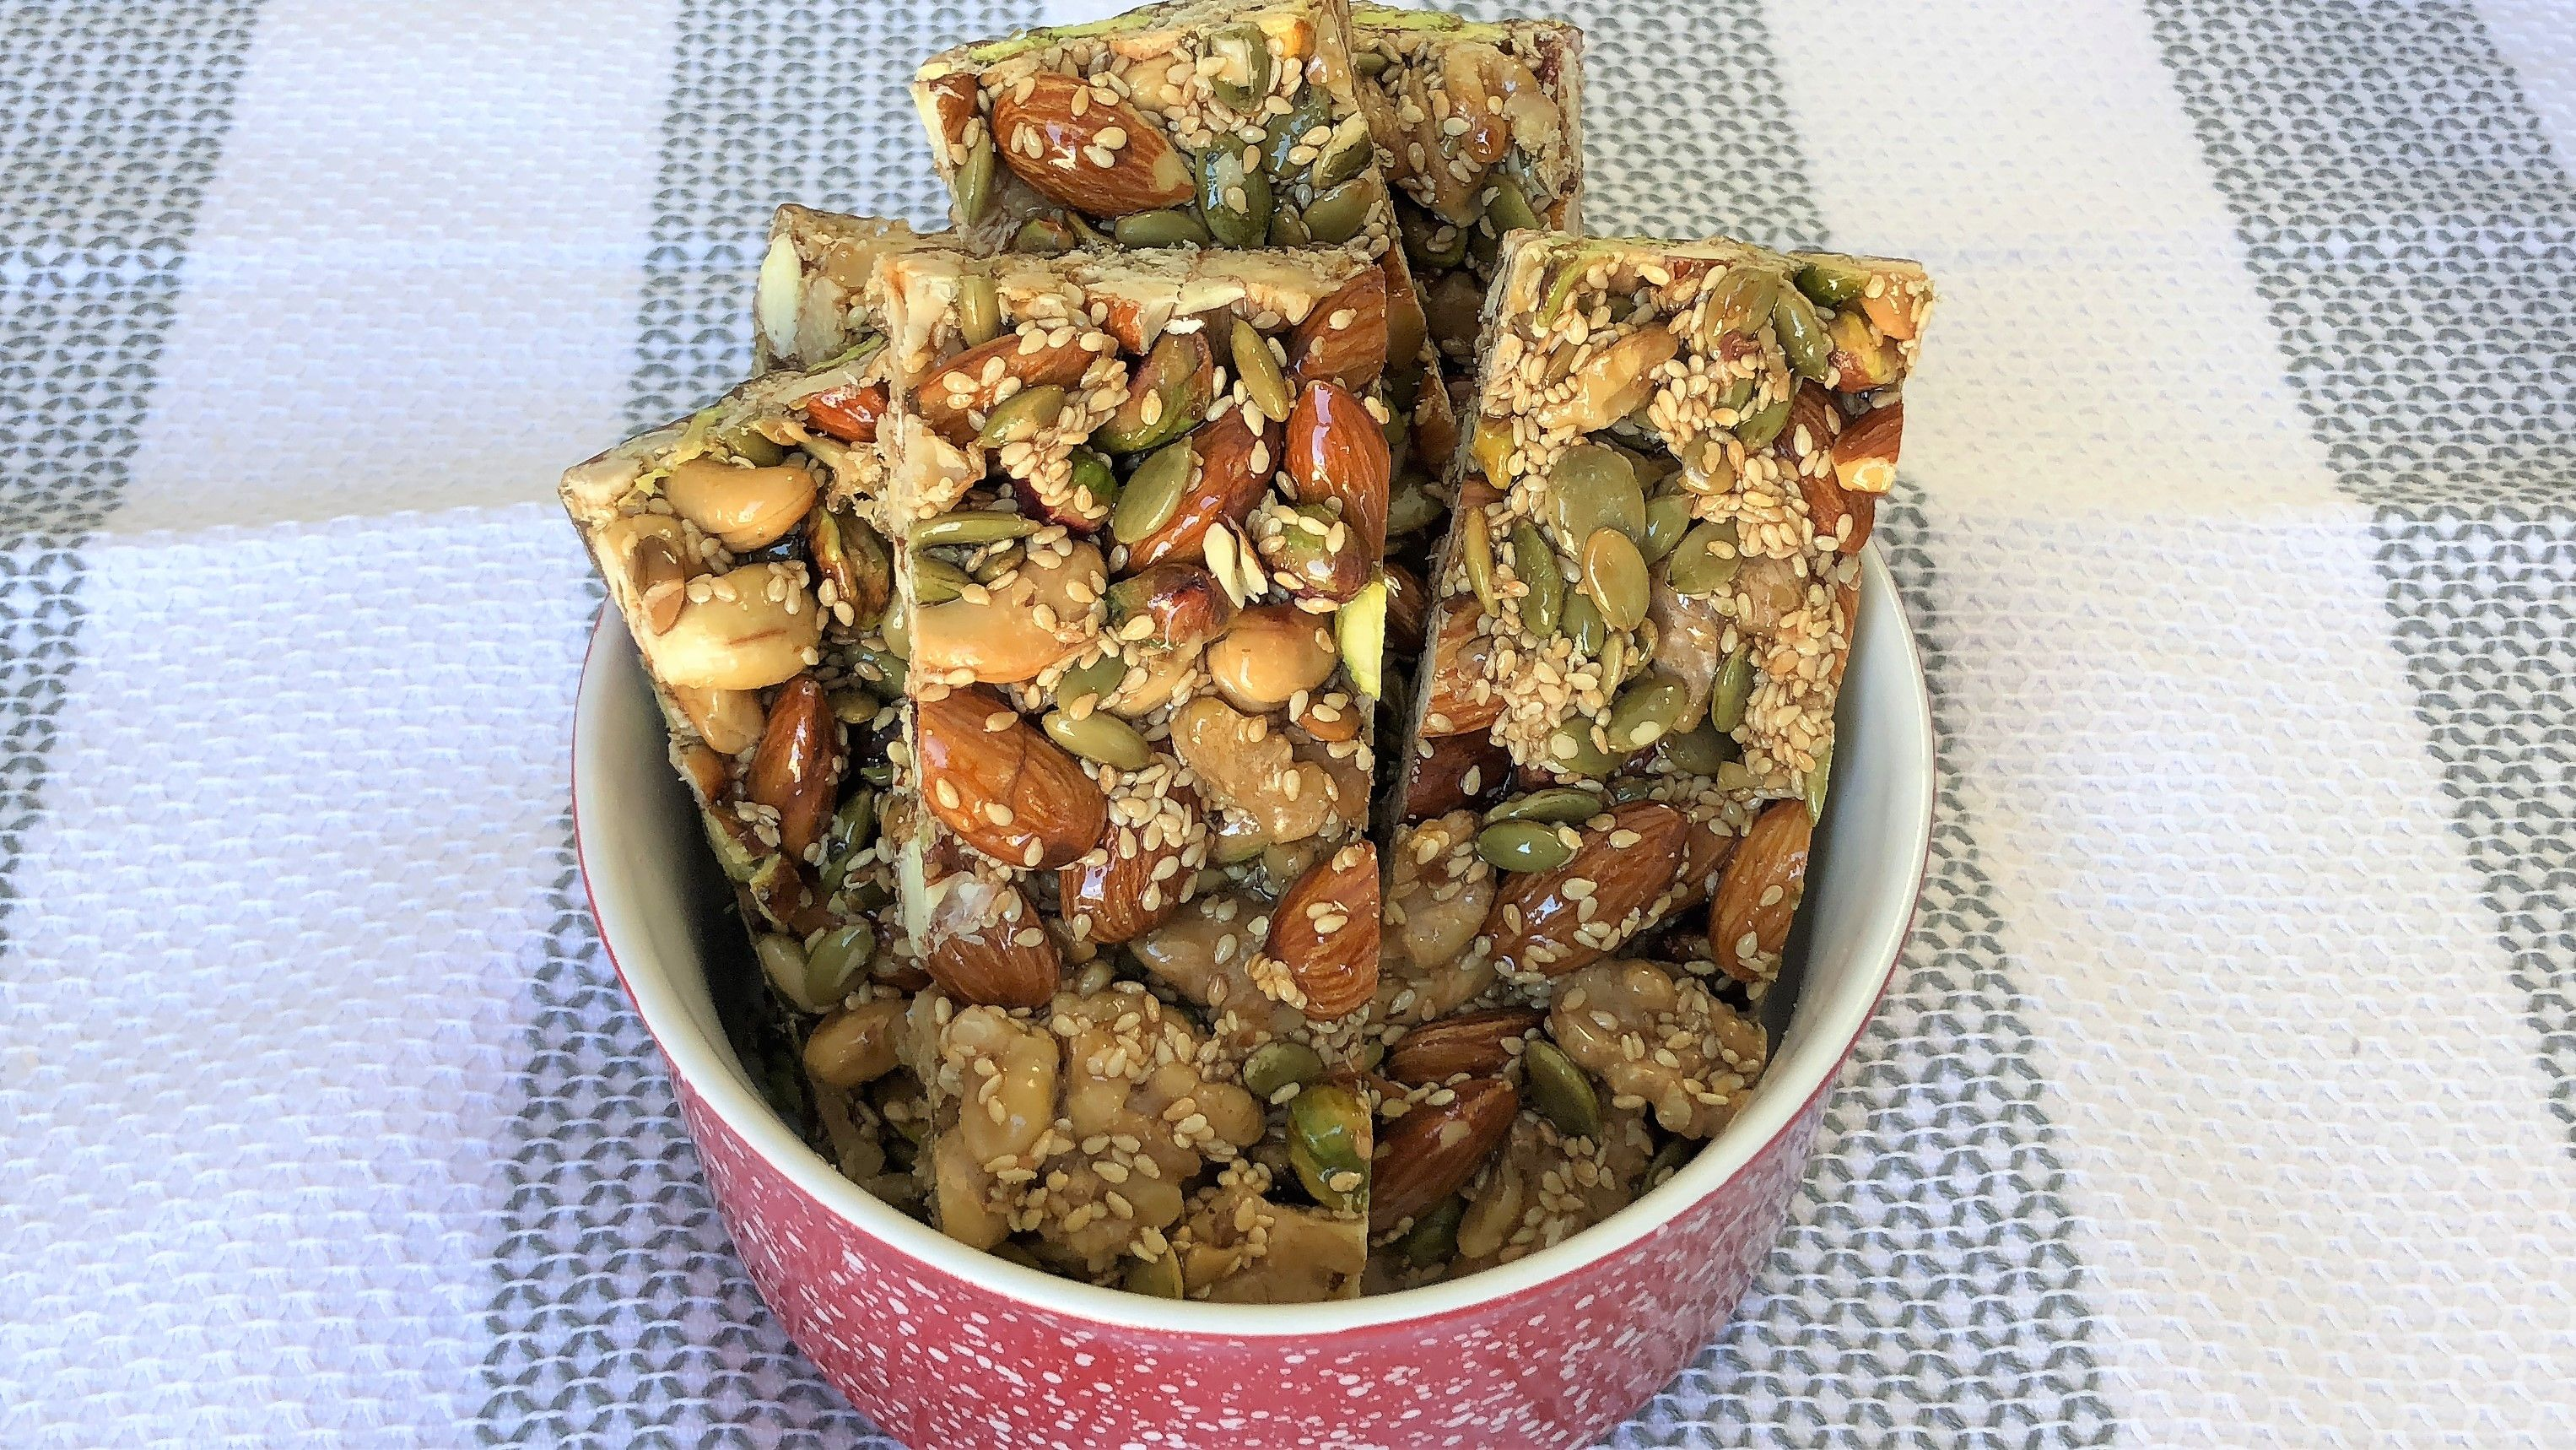 Healthy energy bars recipe protein bars by mazar cuisine httpswww healthy energy bars recipe protein bars by mazar cuisine httpsyoutube forumfinder Image collections